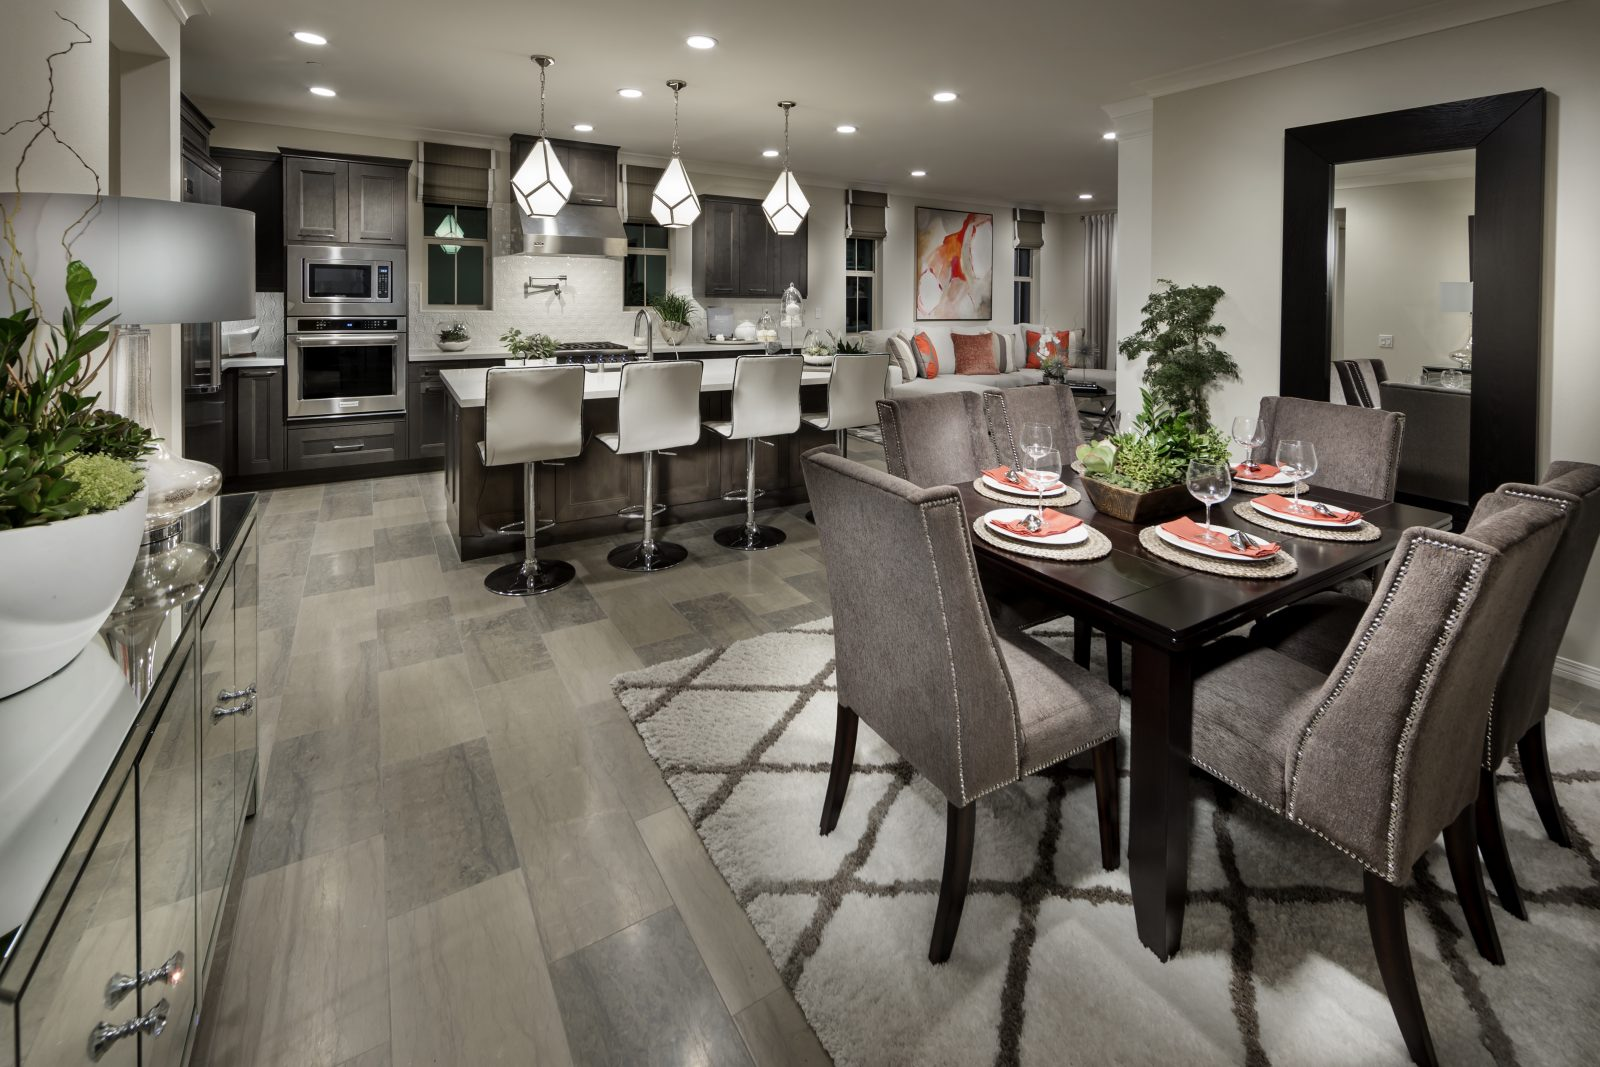 New Homes for Sale in Irvine CA - Great Room